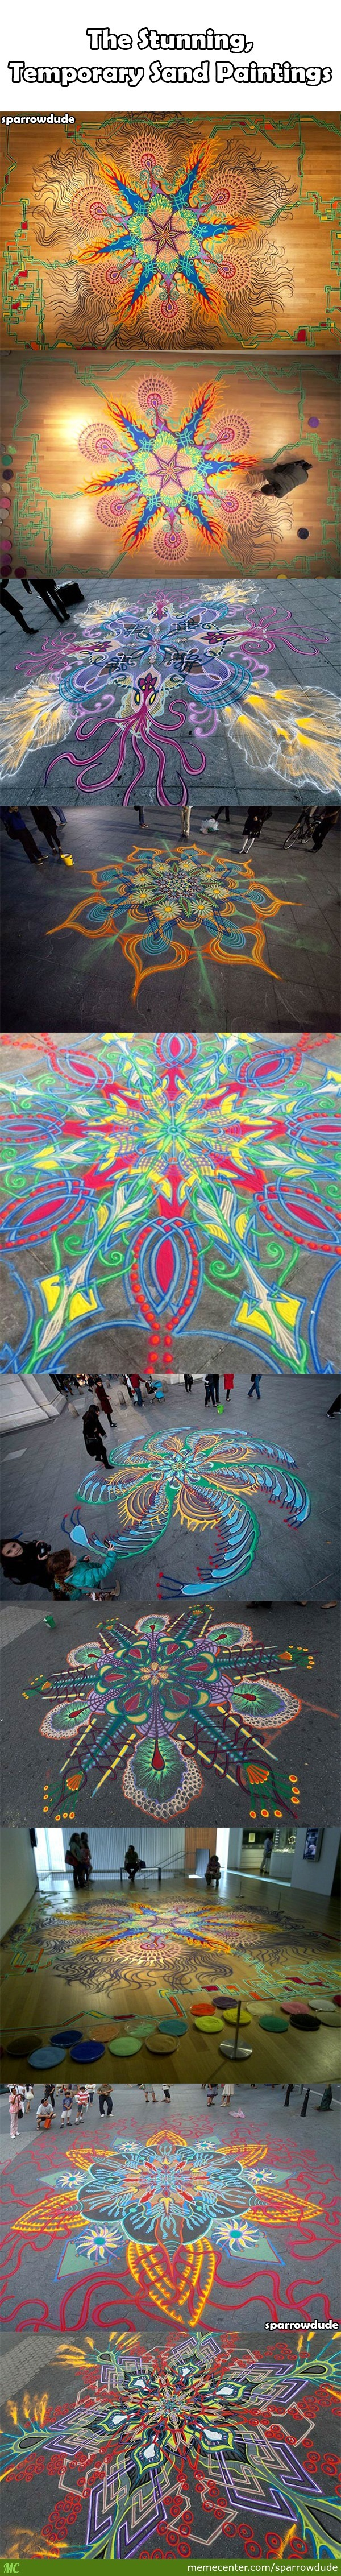 Temporary Sand Paintings